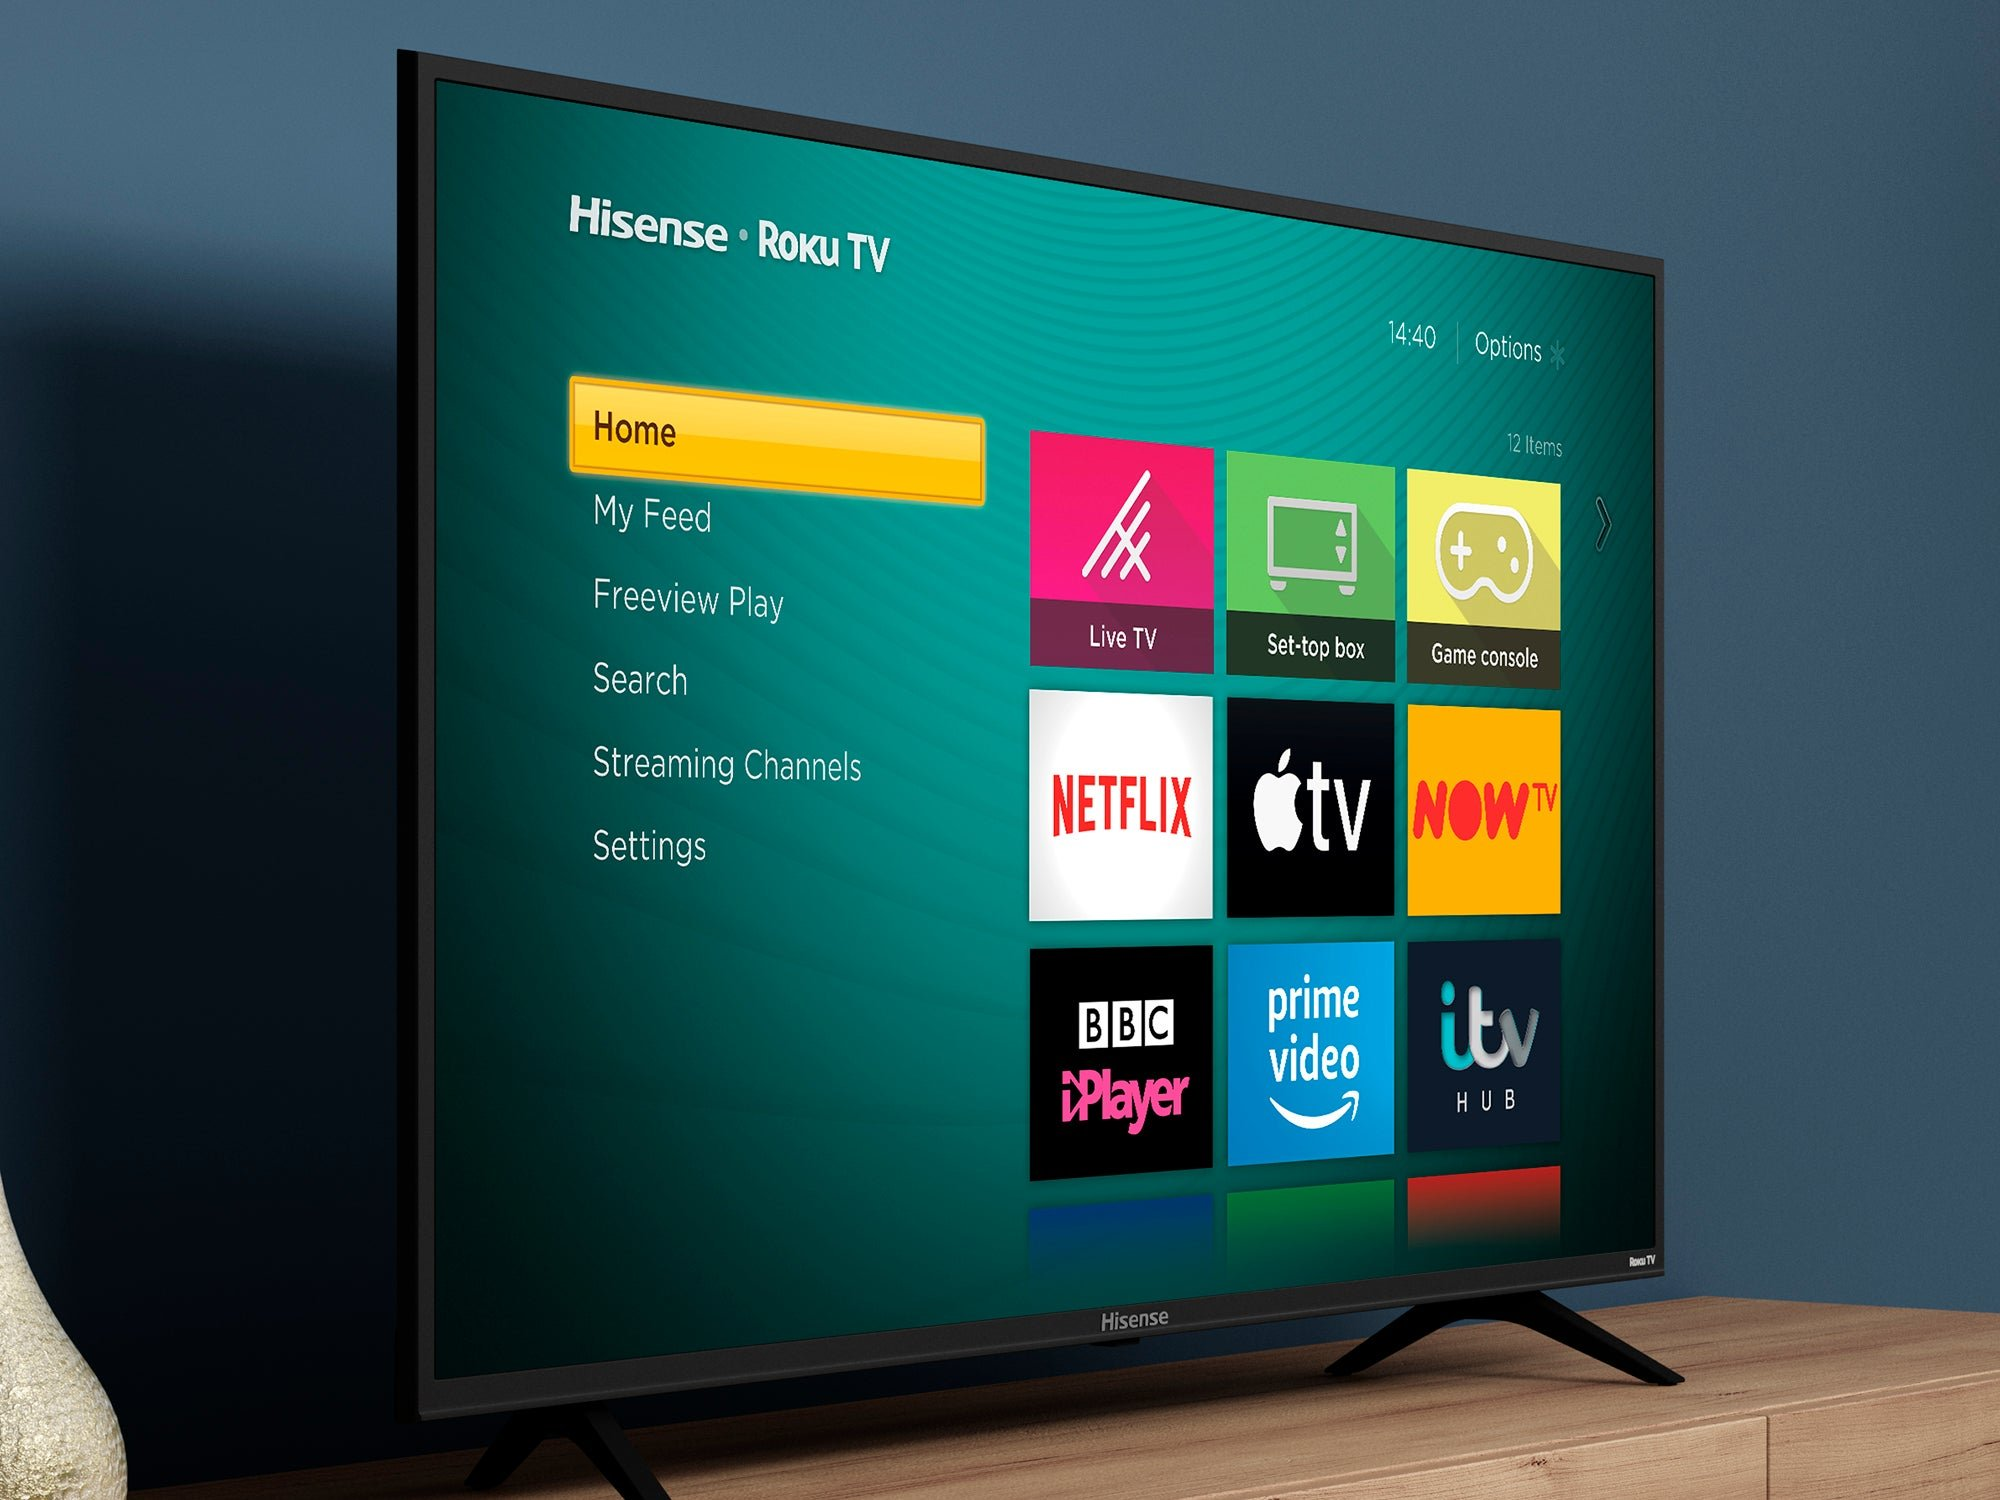 7 tips and tricks to master your Roku